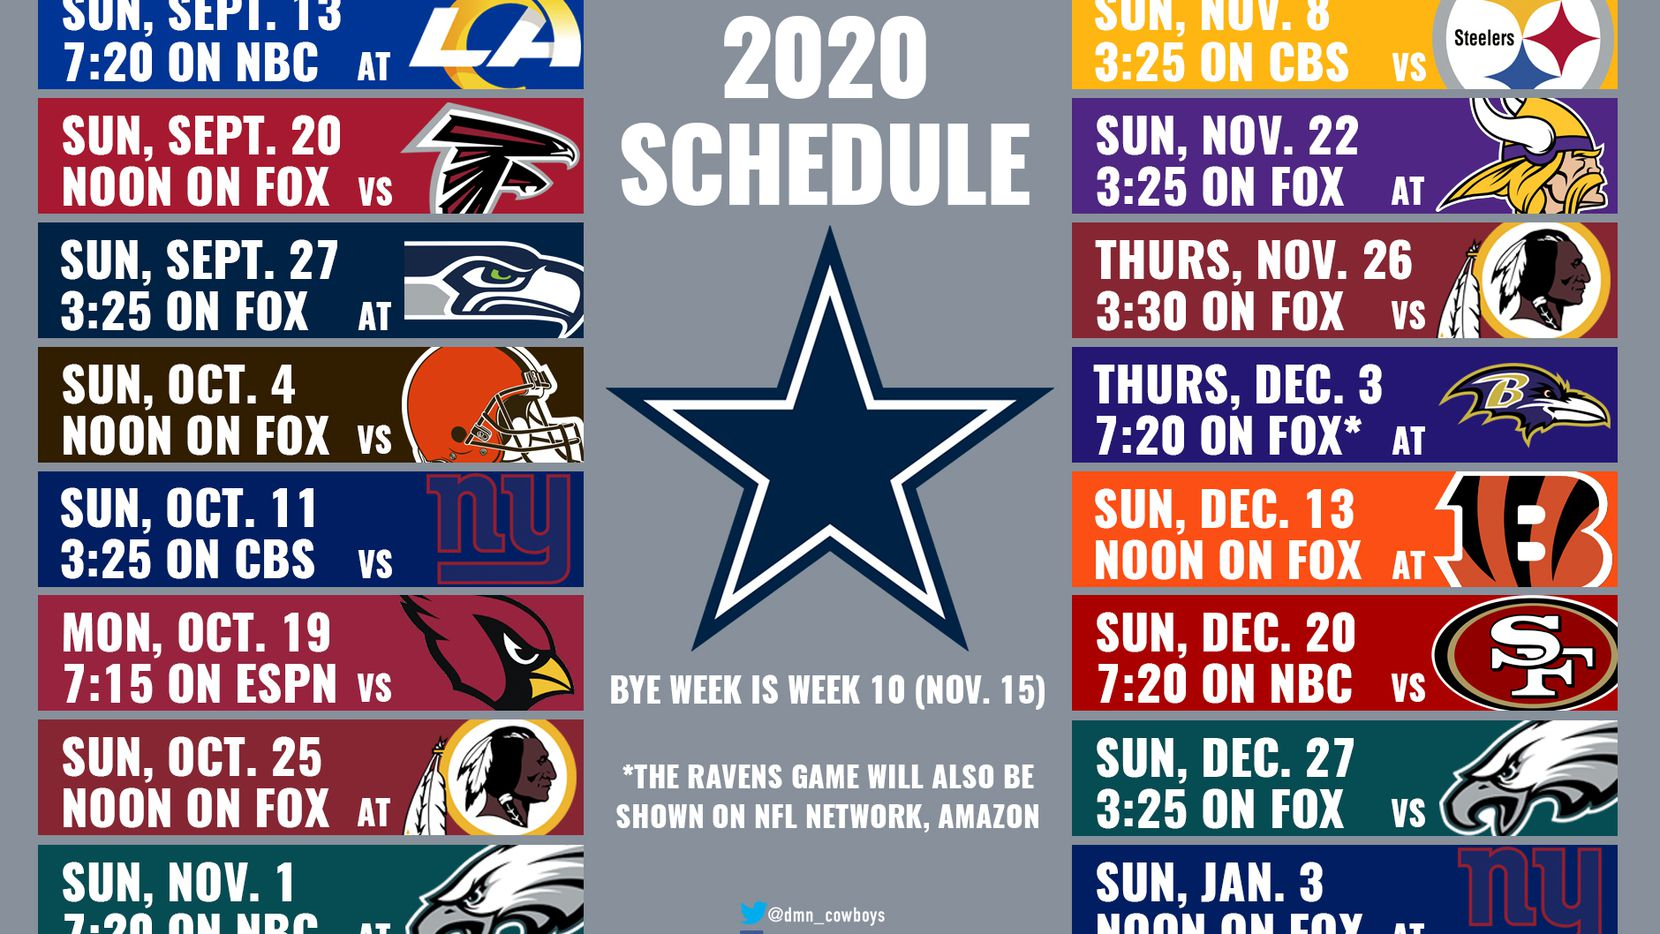 2020 Cowboys Schedule: Dates And Times Announced For Dallas throughout Free Printable Nfl 2020 Schedule